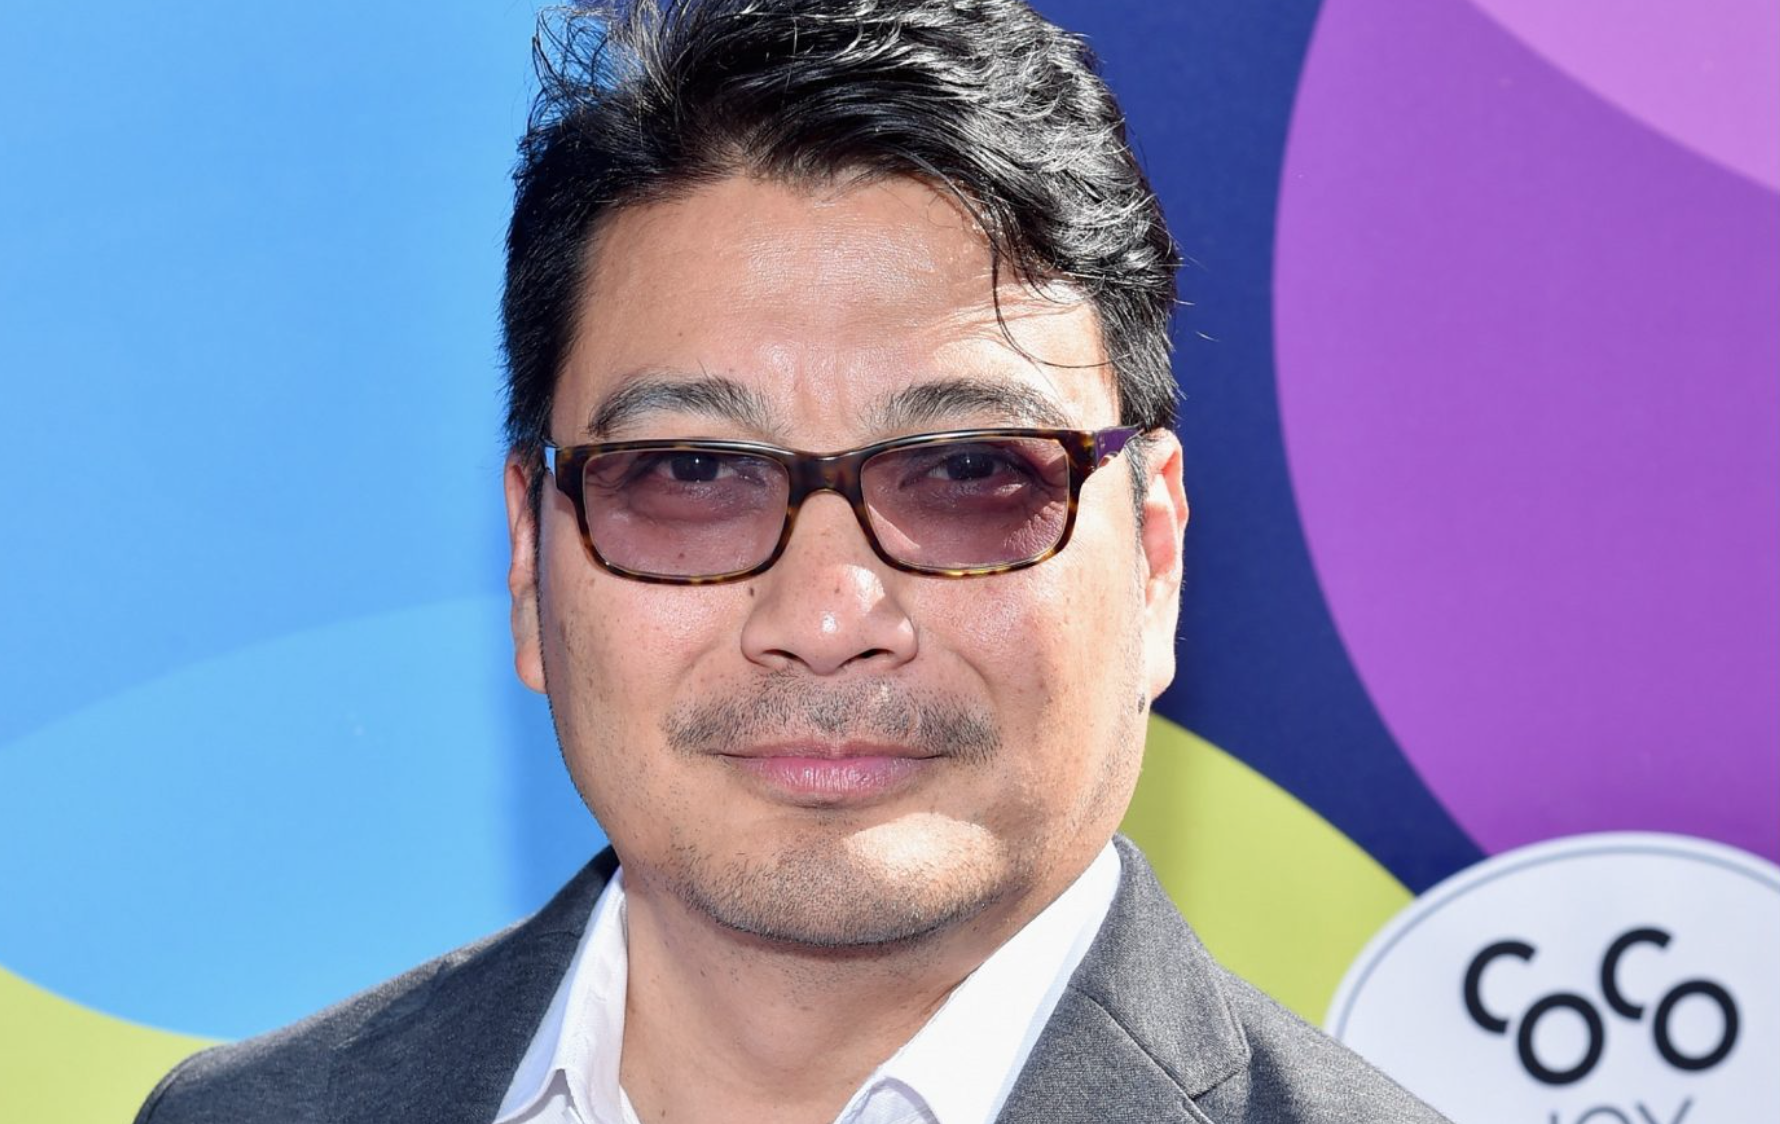 'Inside Out' co-director Ronnie Del Carmen working on Netflix animated feature about Filipino mythology